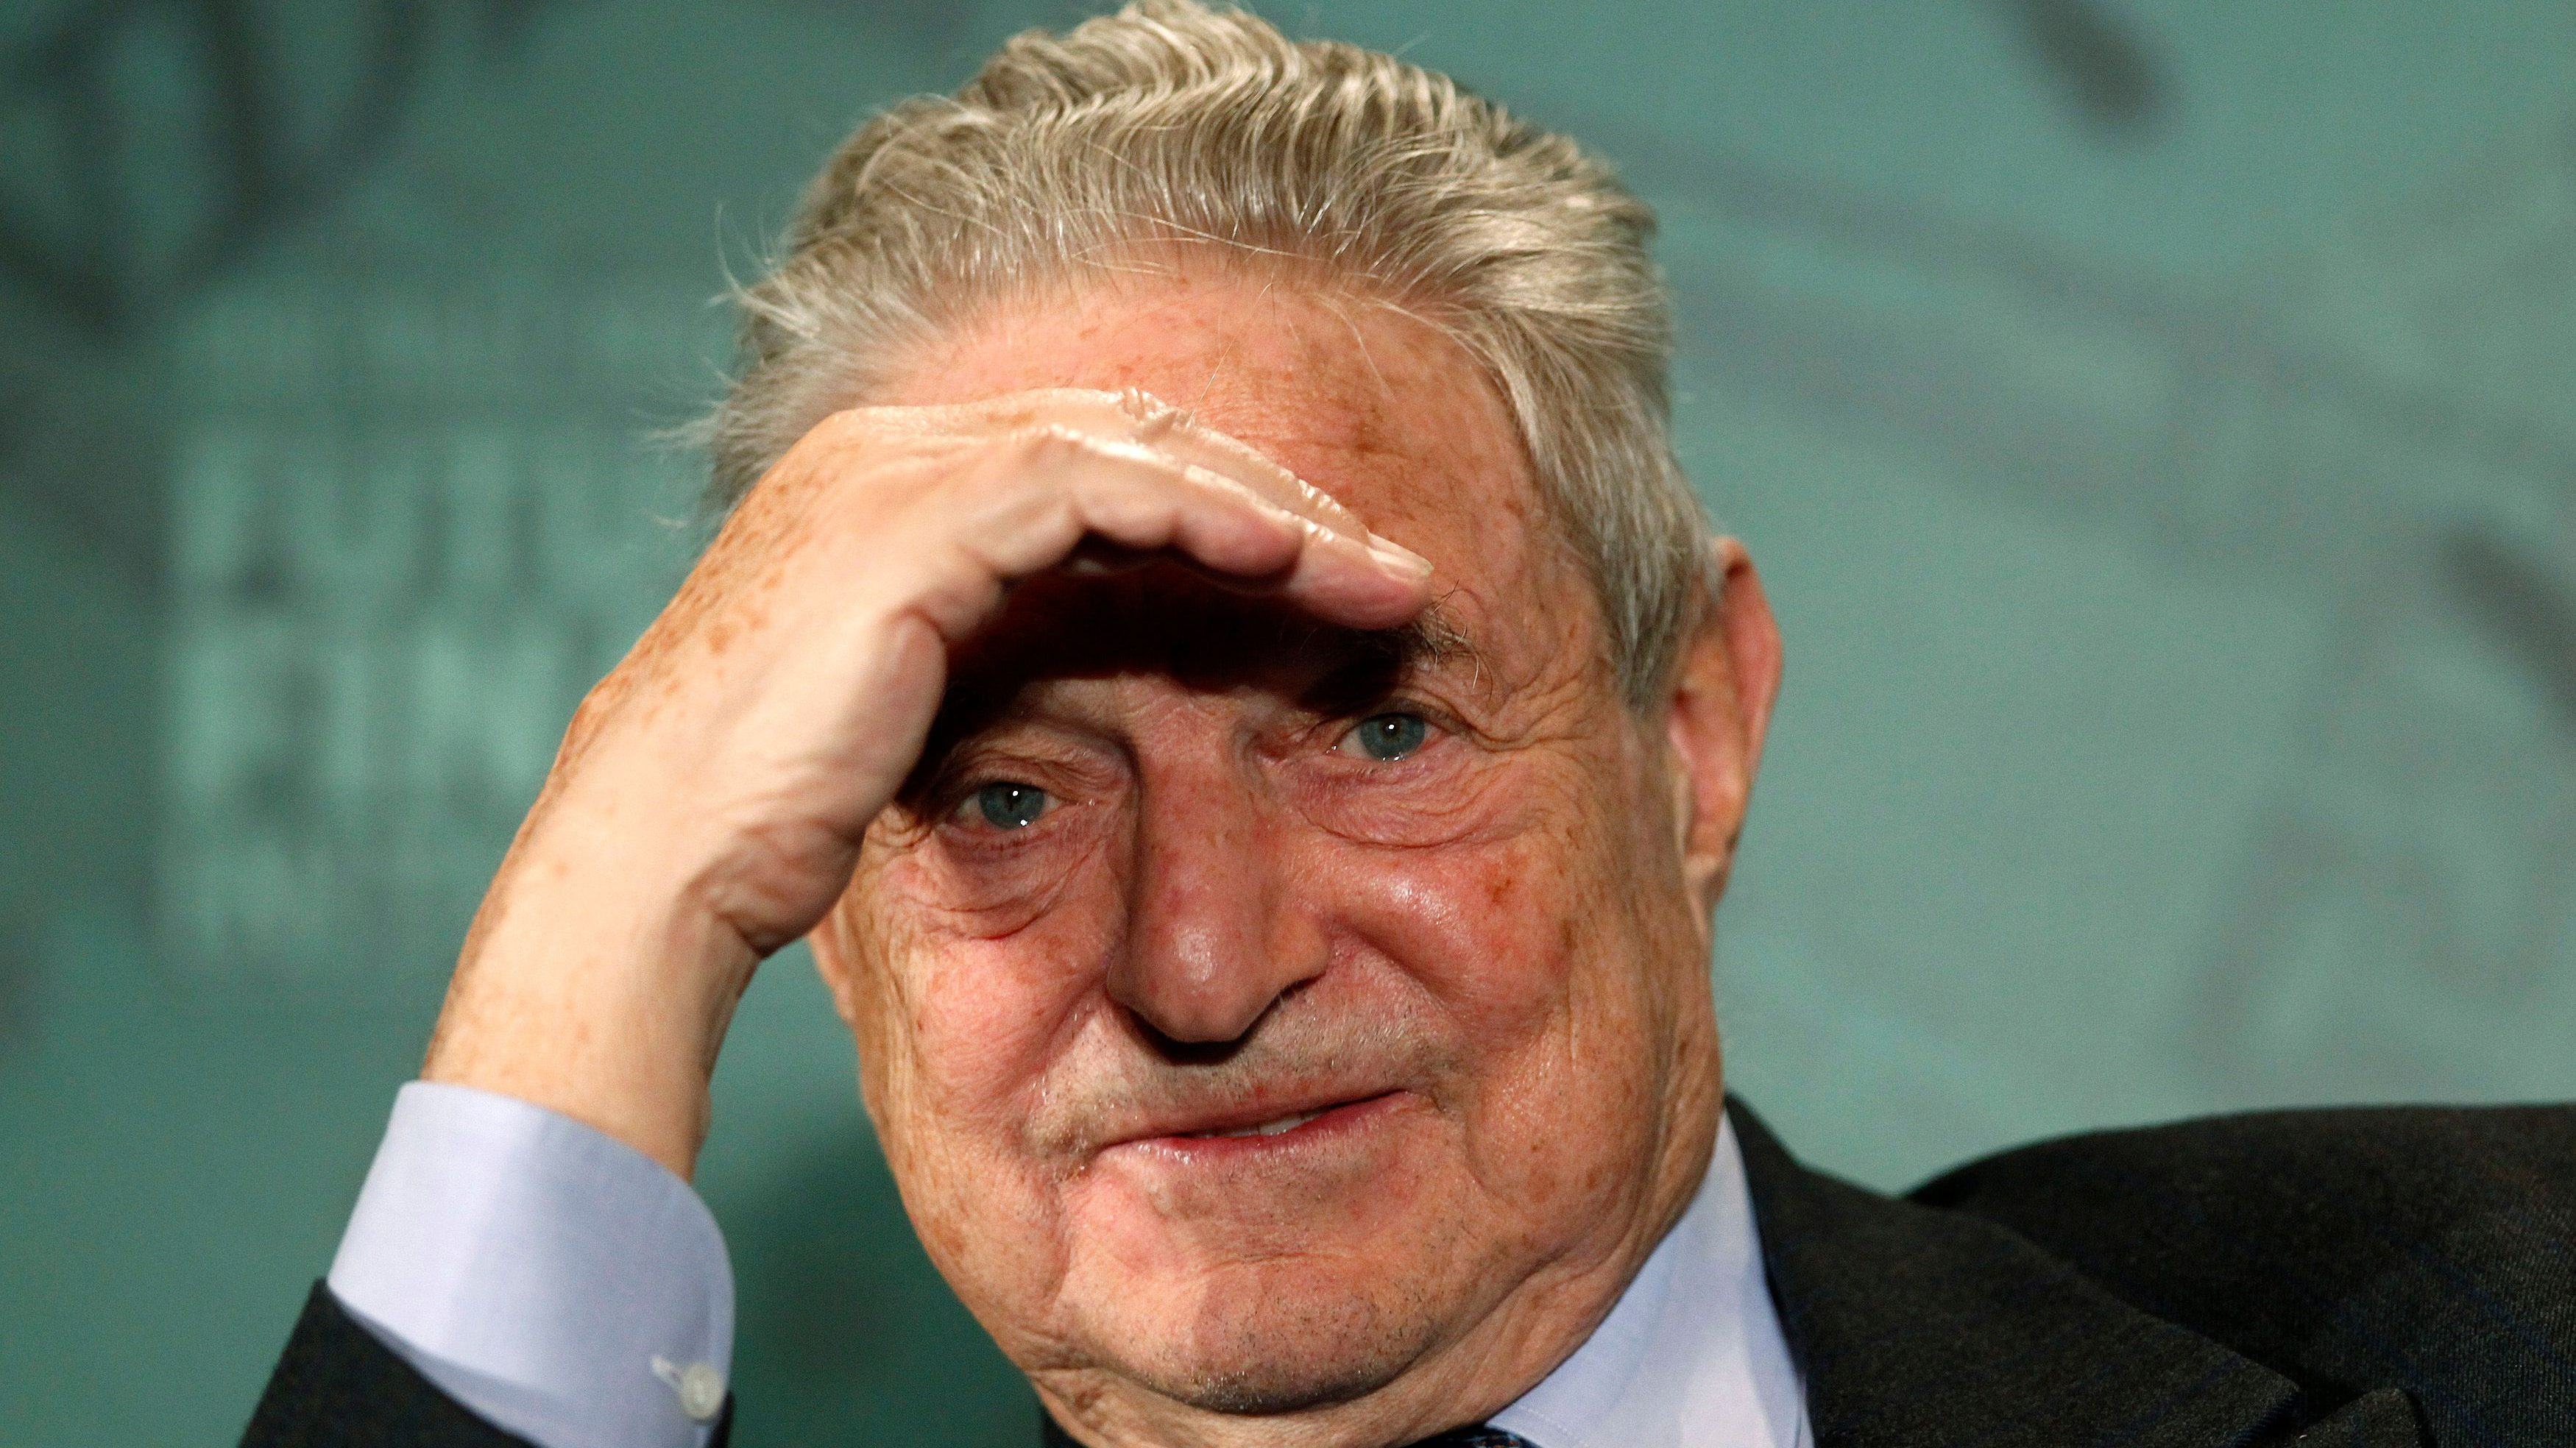 George  Soros, Chairman of Soros Fund Management, listens during a Future of Finance Initiative conference in Horsham, southern England